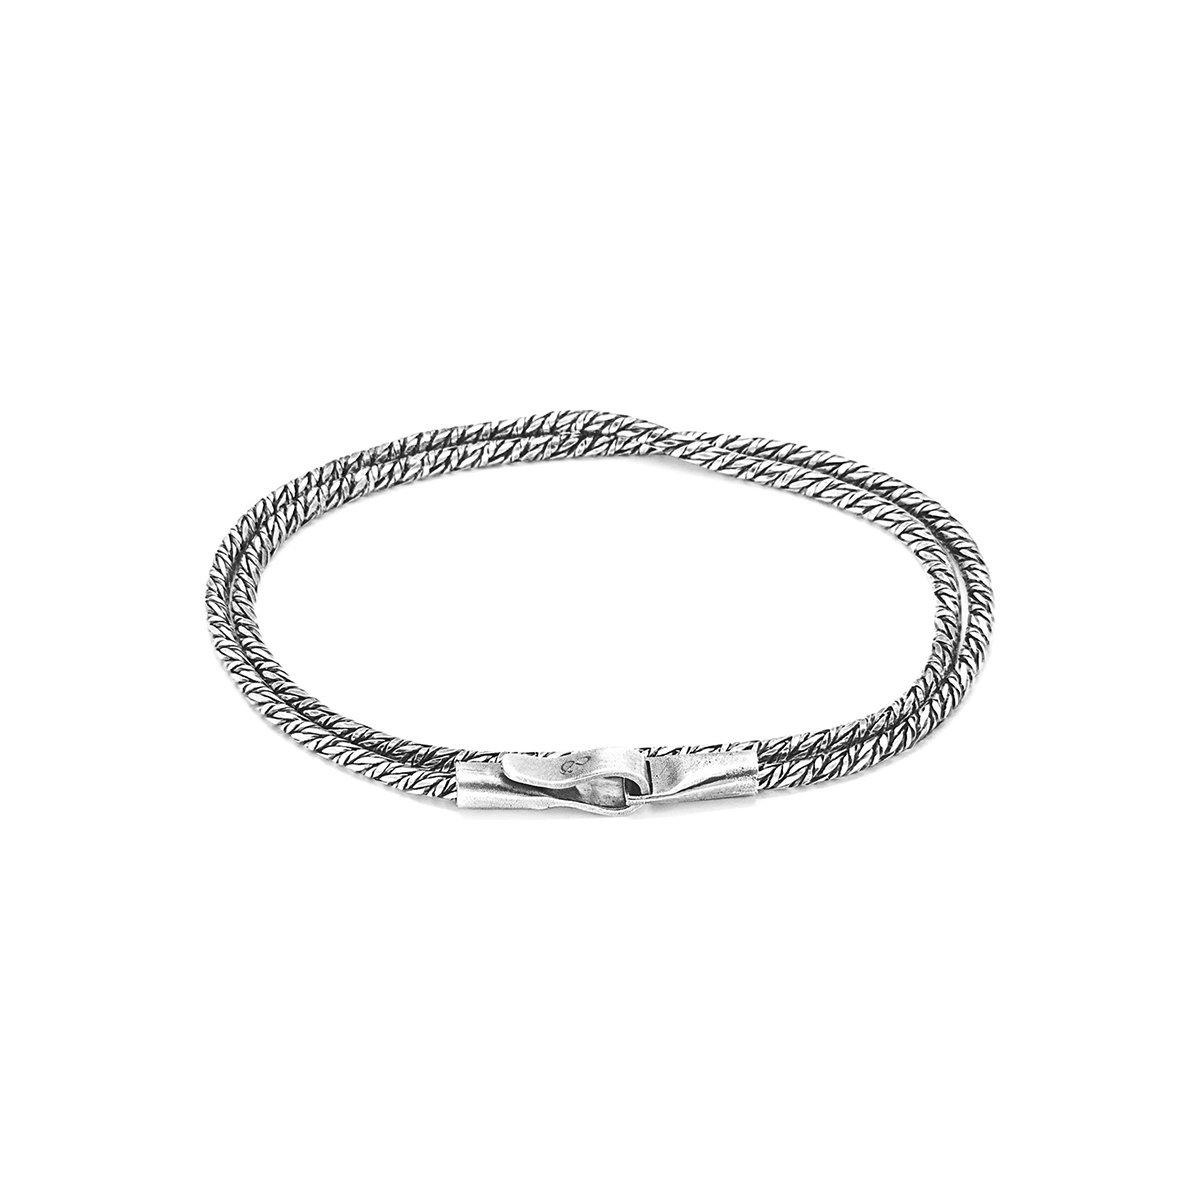 Anchor & Crew Mizzen Single Sail Silver Chain Bracelet - 21cm pjQVwV65kN